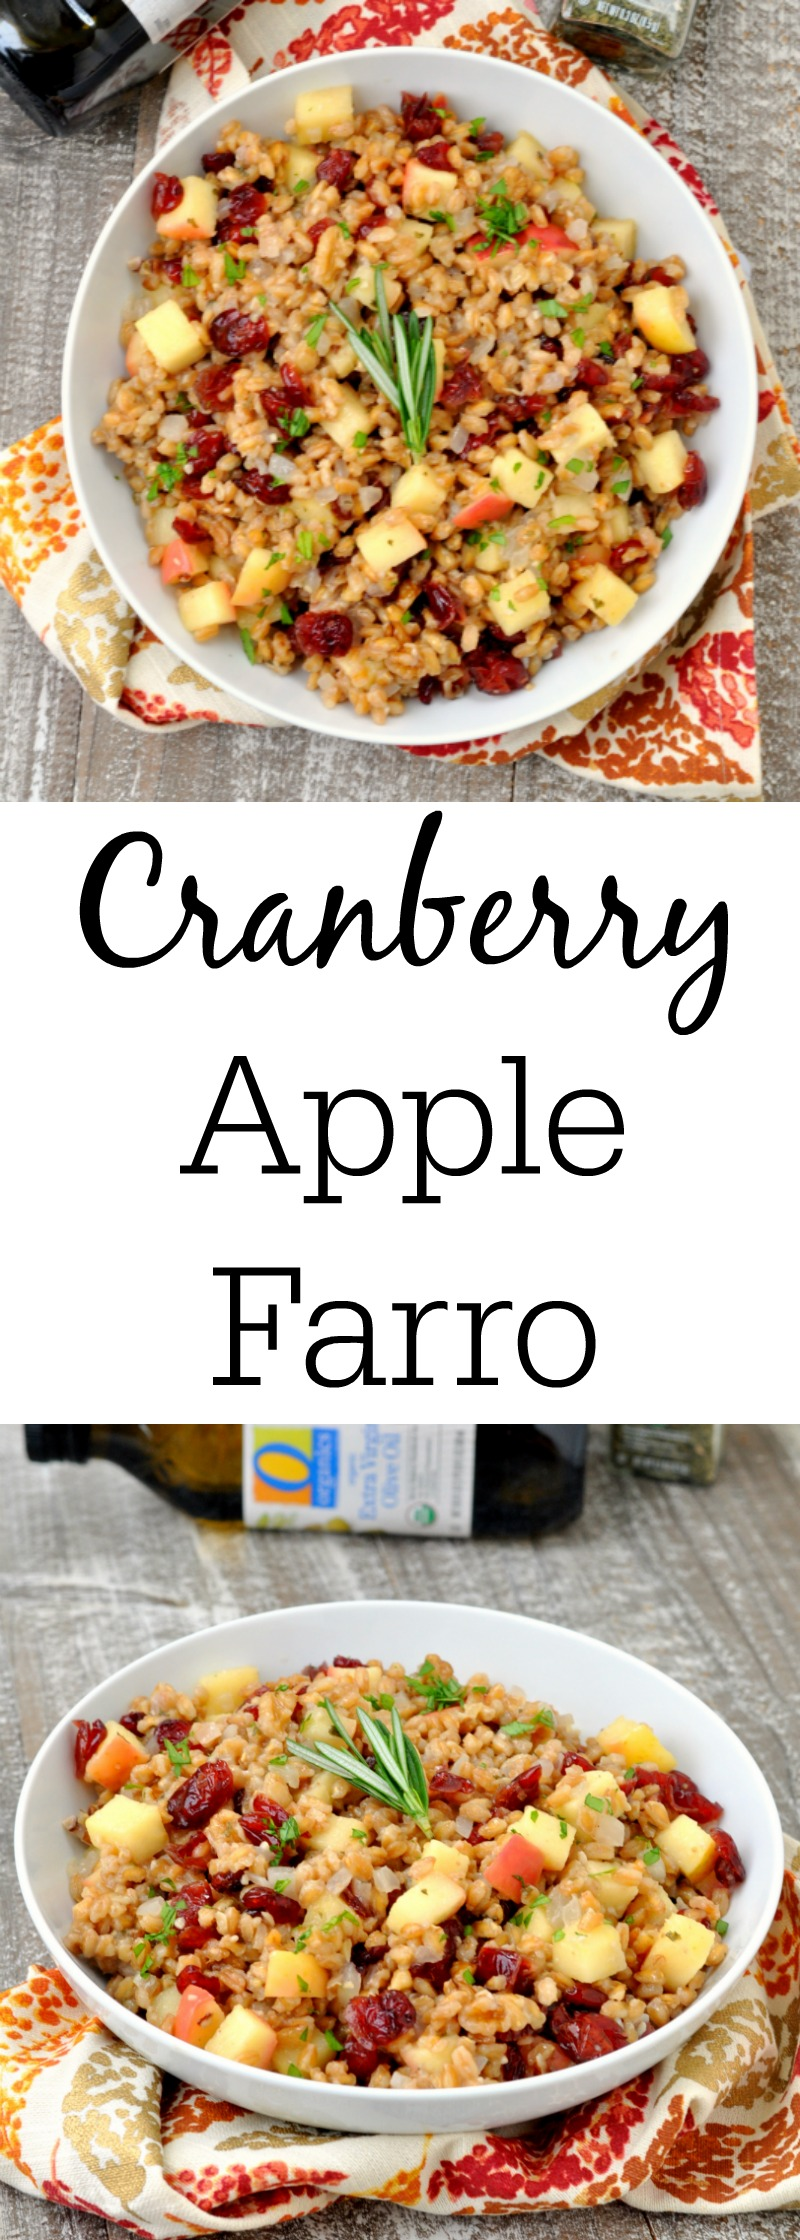 Cranberry Apple Farro